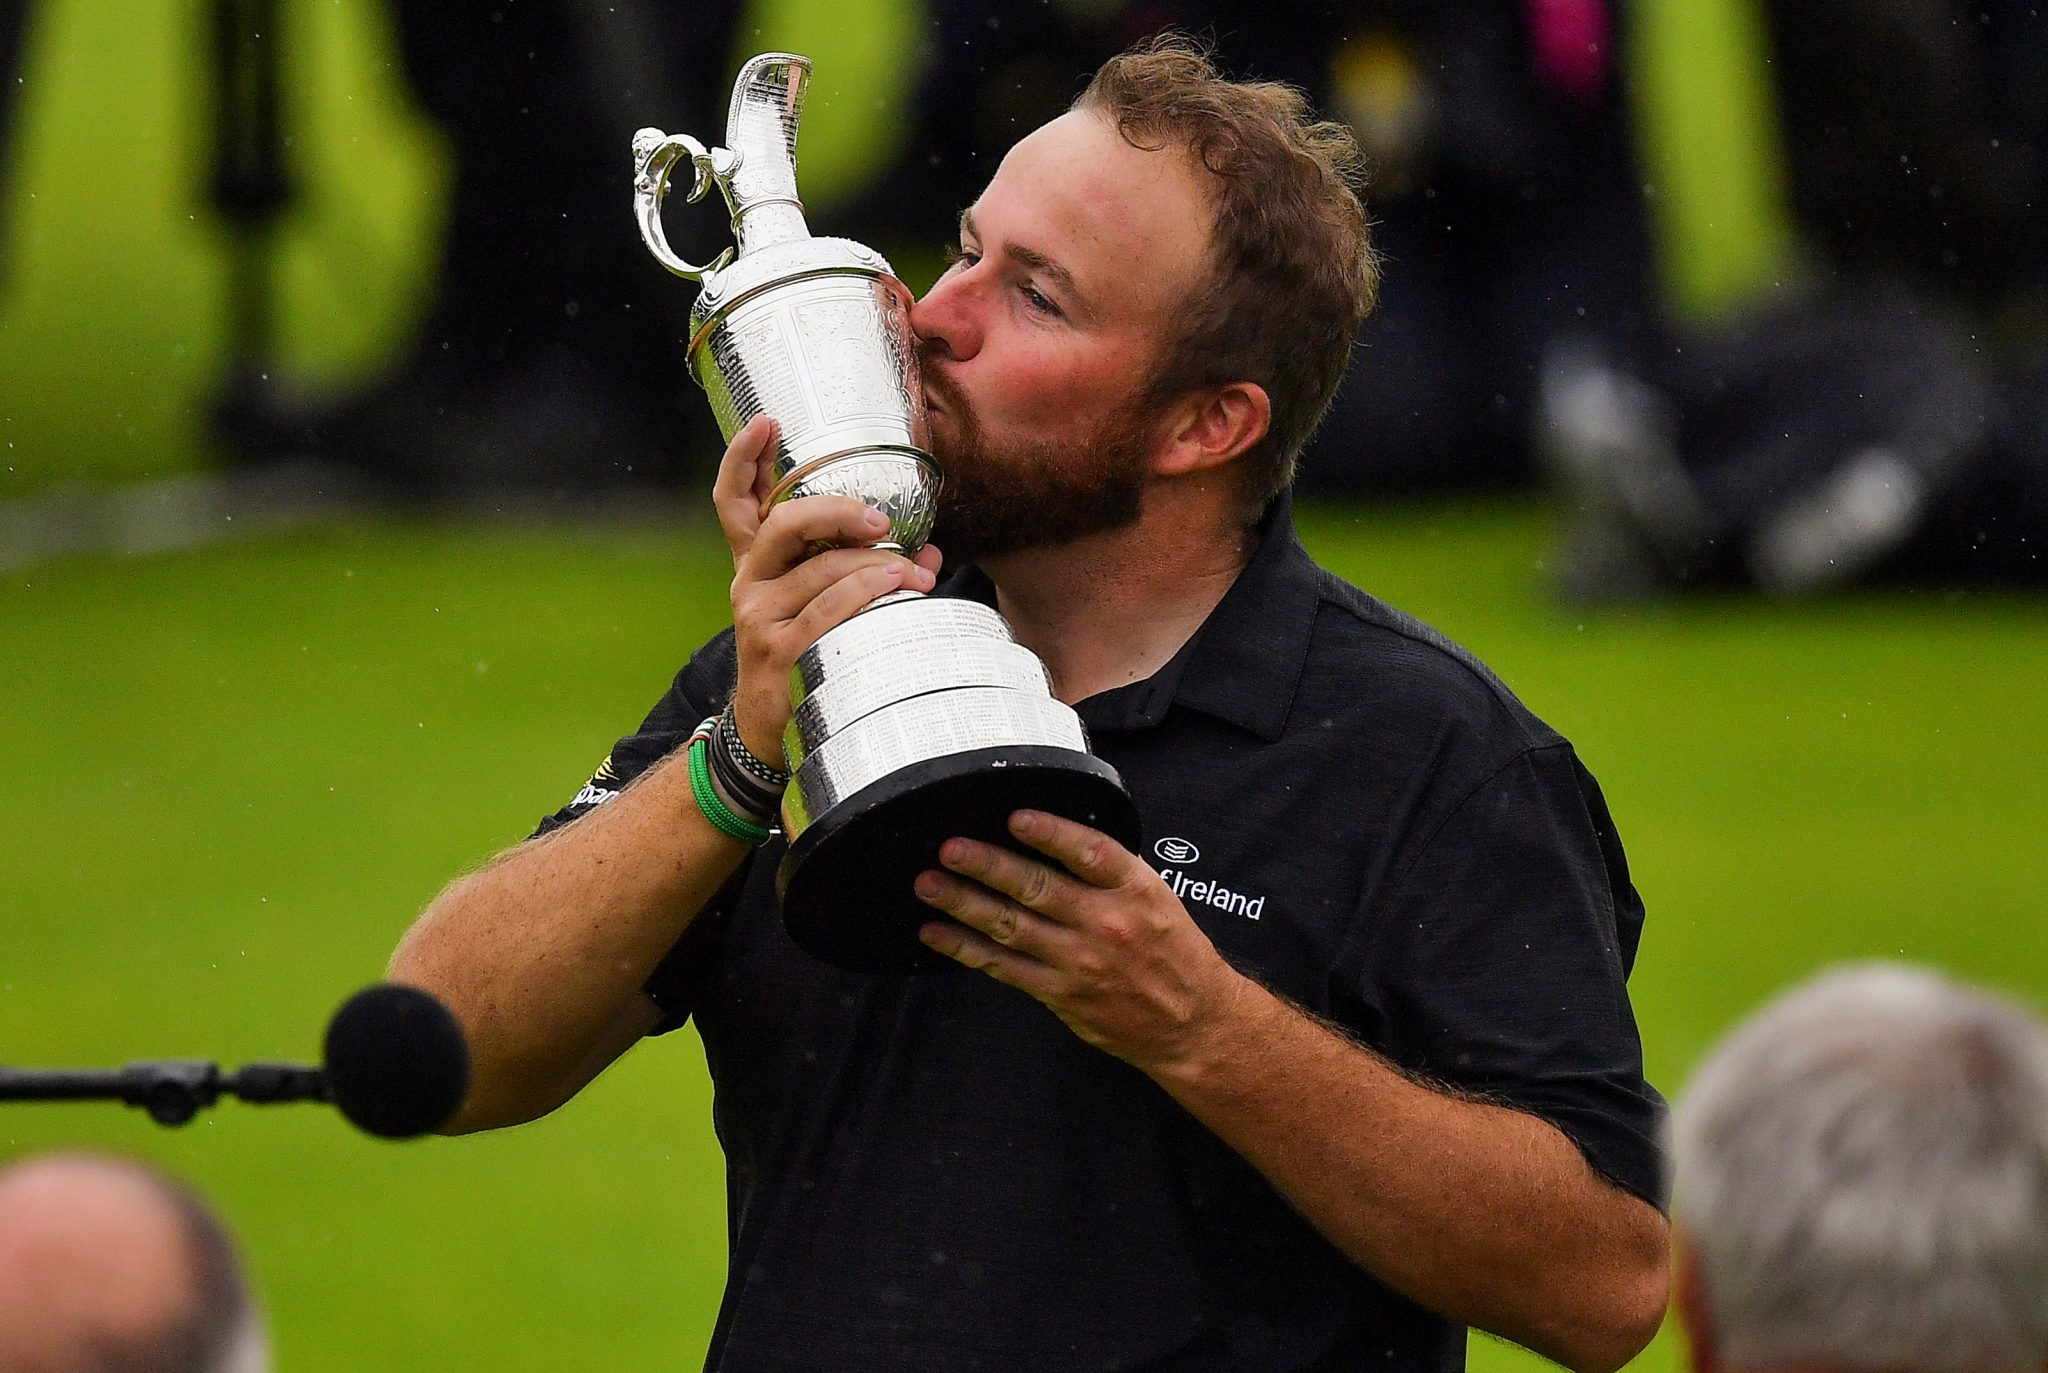 Shane Lowry becomes fifth Irishman to win Open Championship